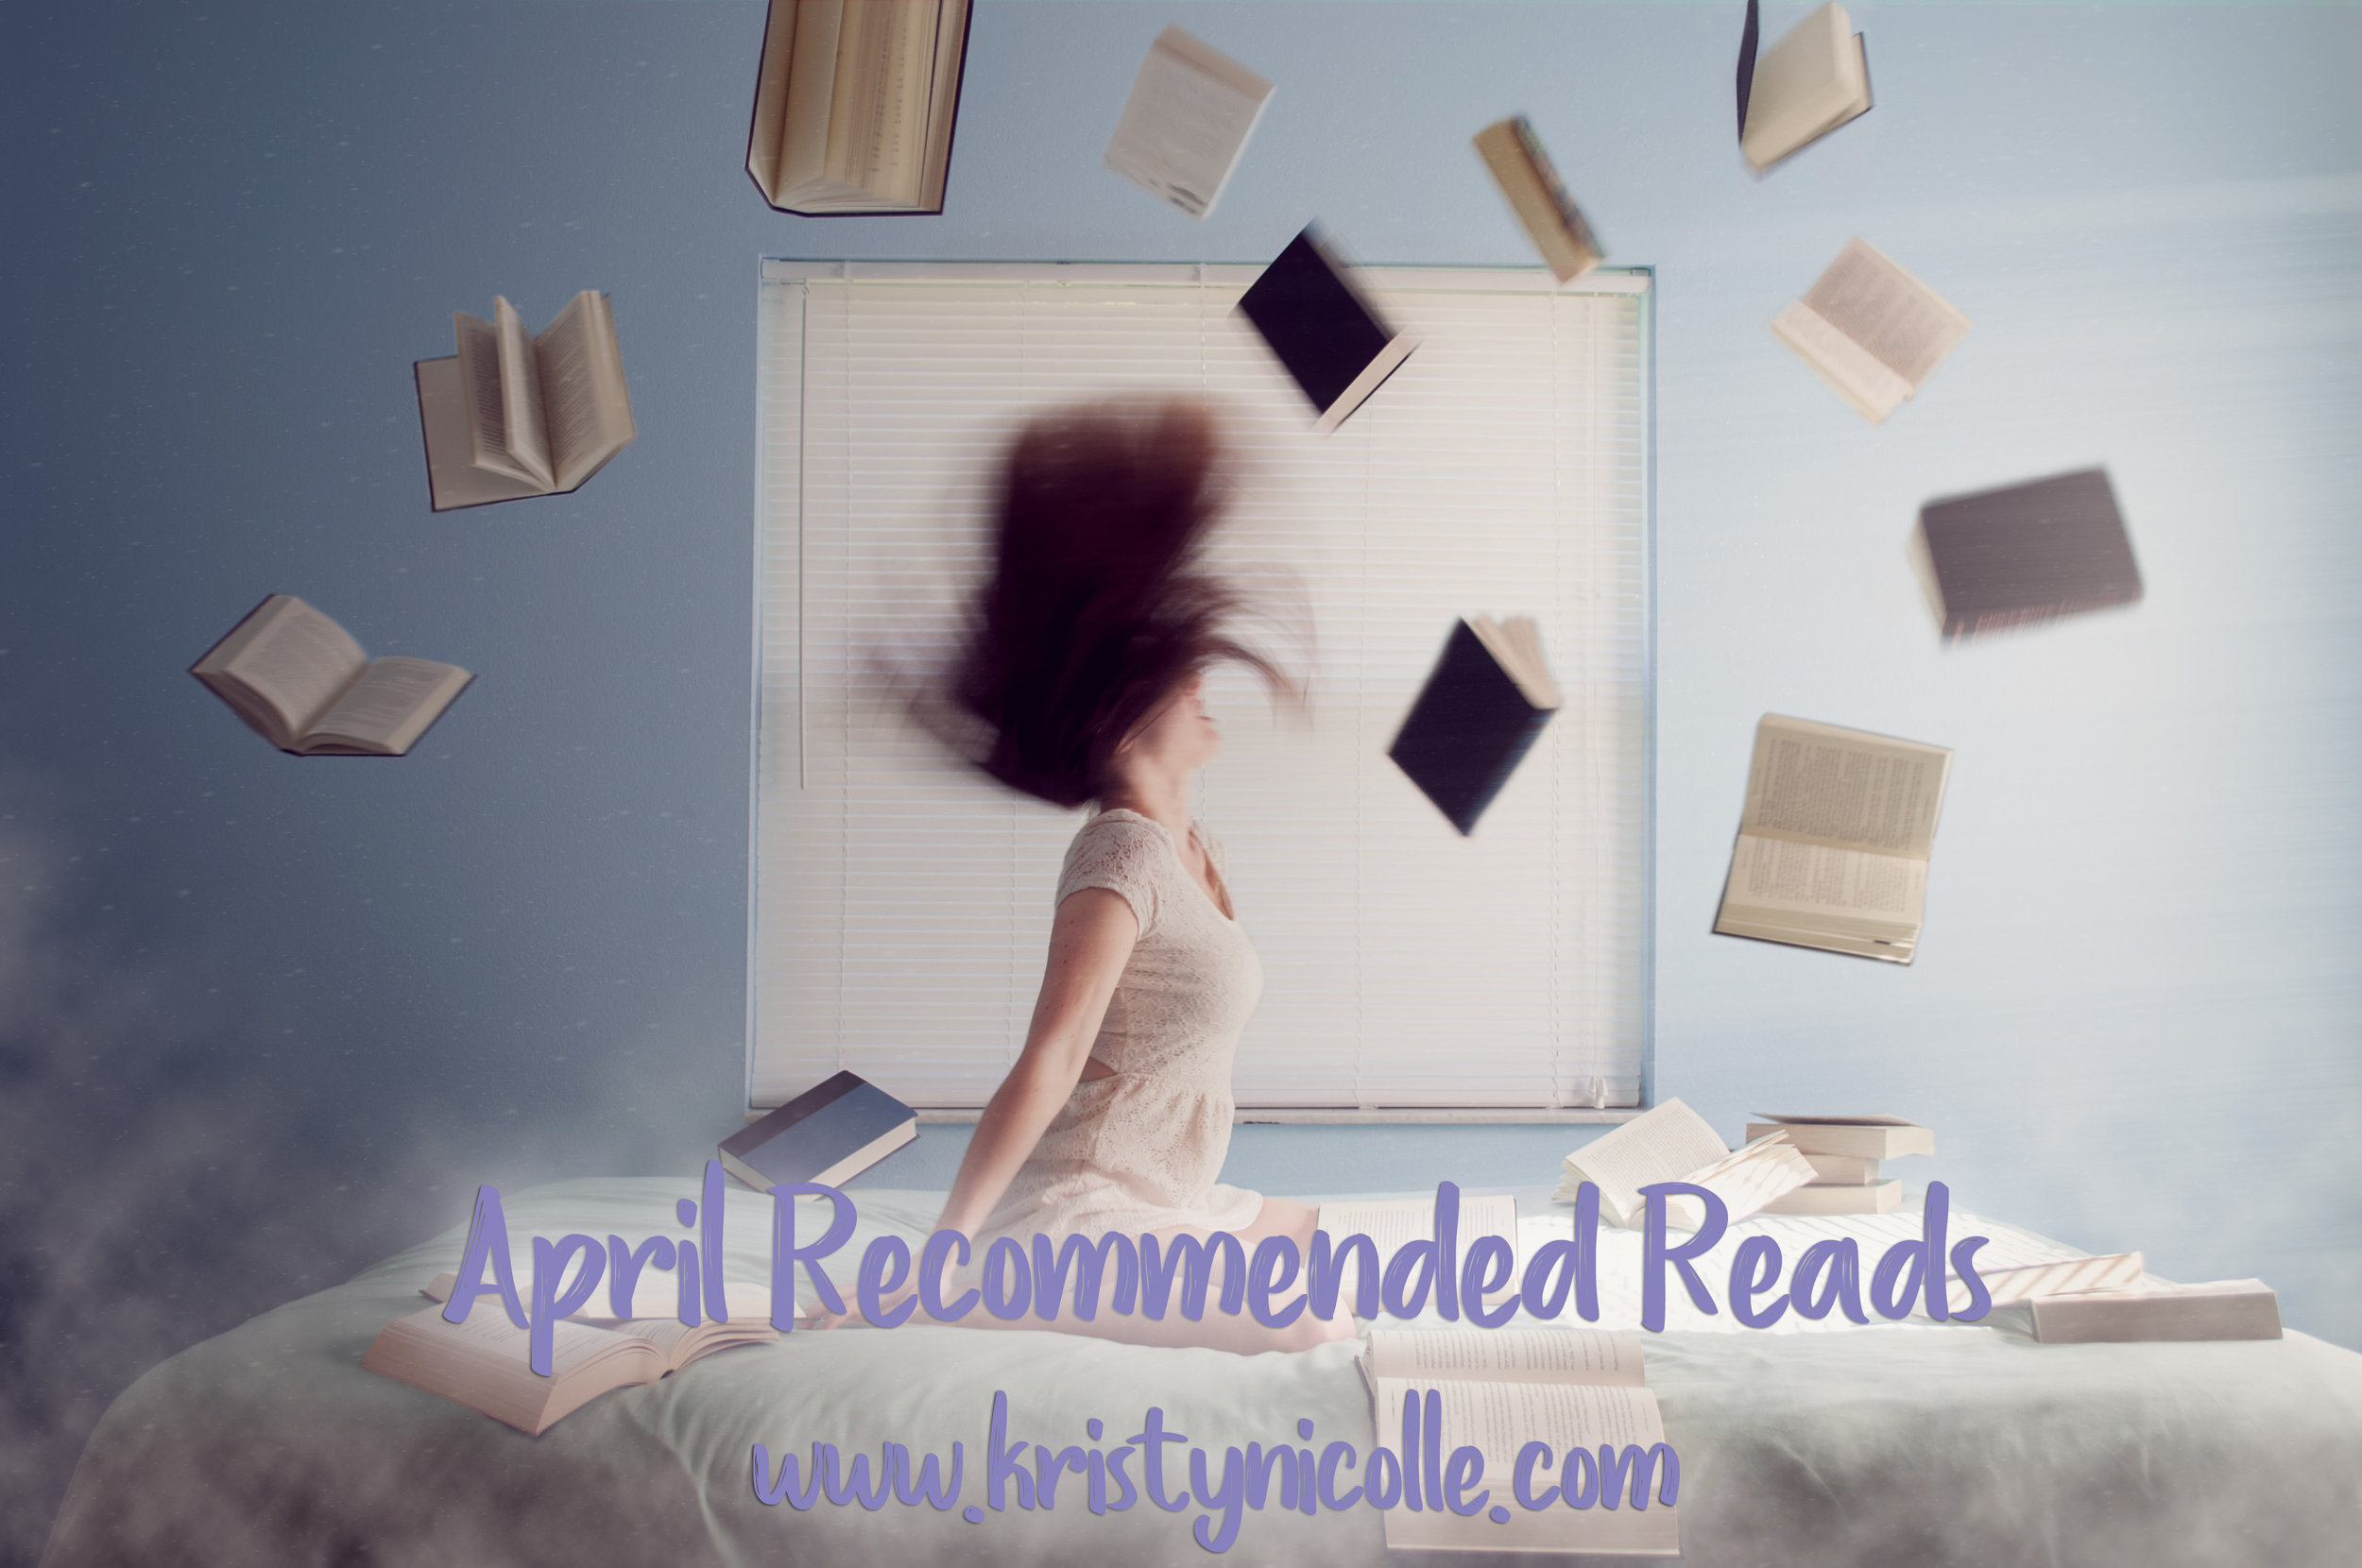 April Recommended Reads Kristy Nicolle